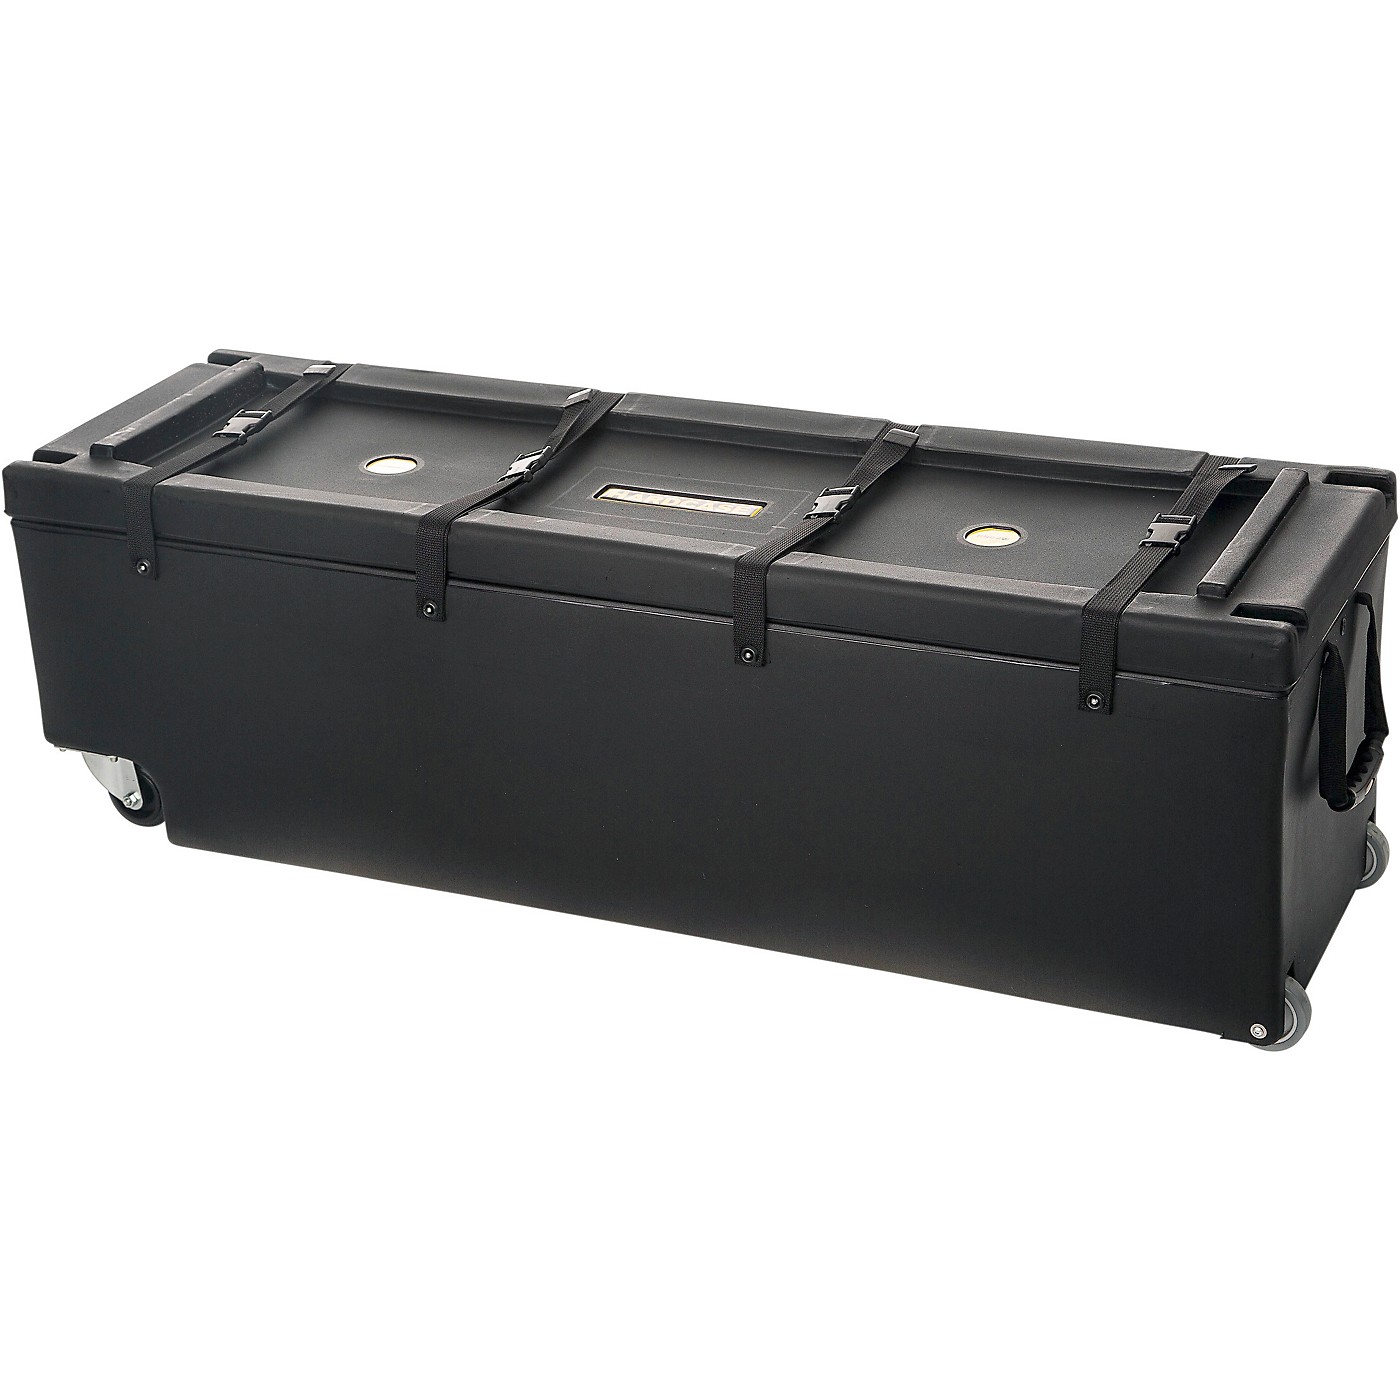 HARDCASE 52 x 16 x 16 in. Hardware Case with Four Wheels thumbnail